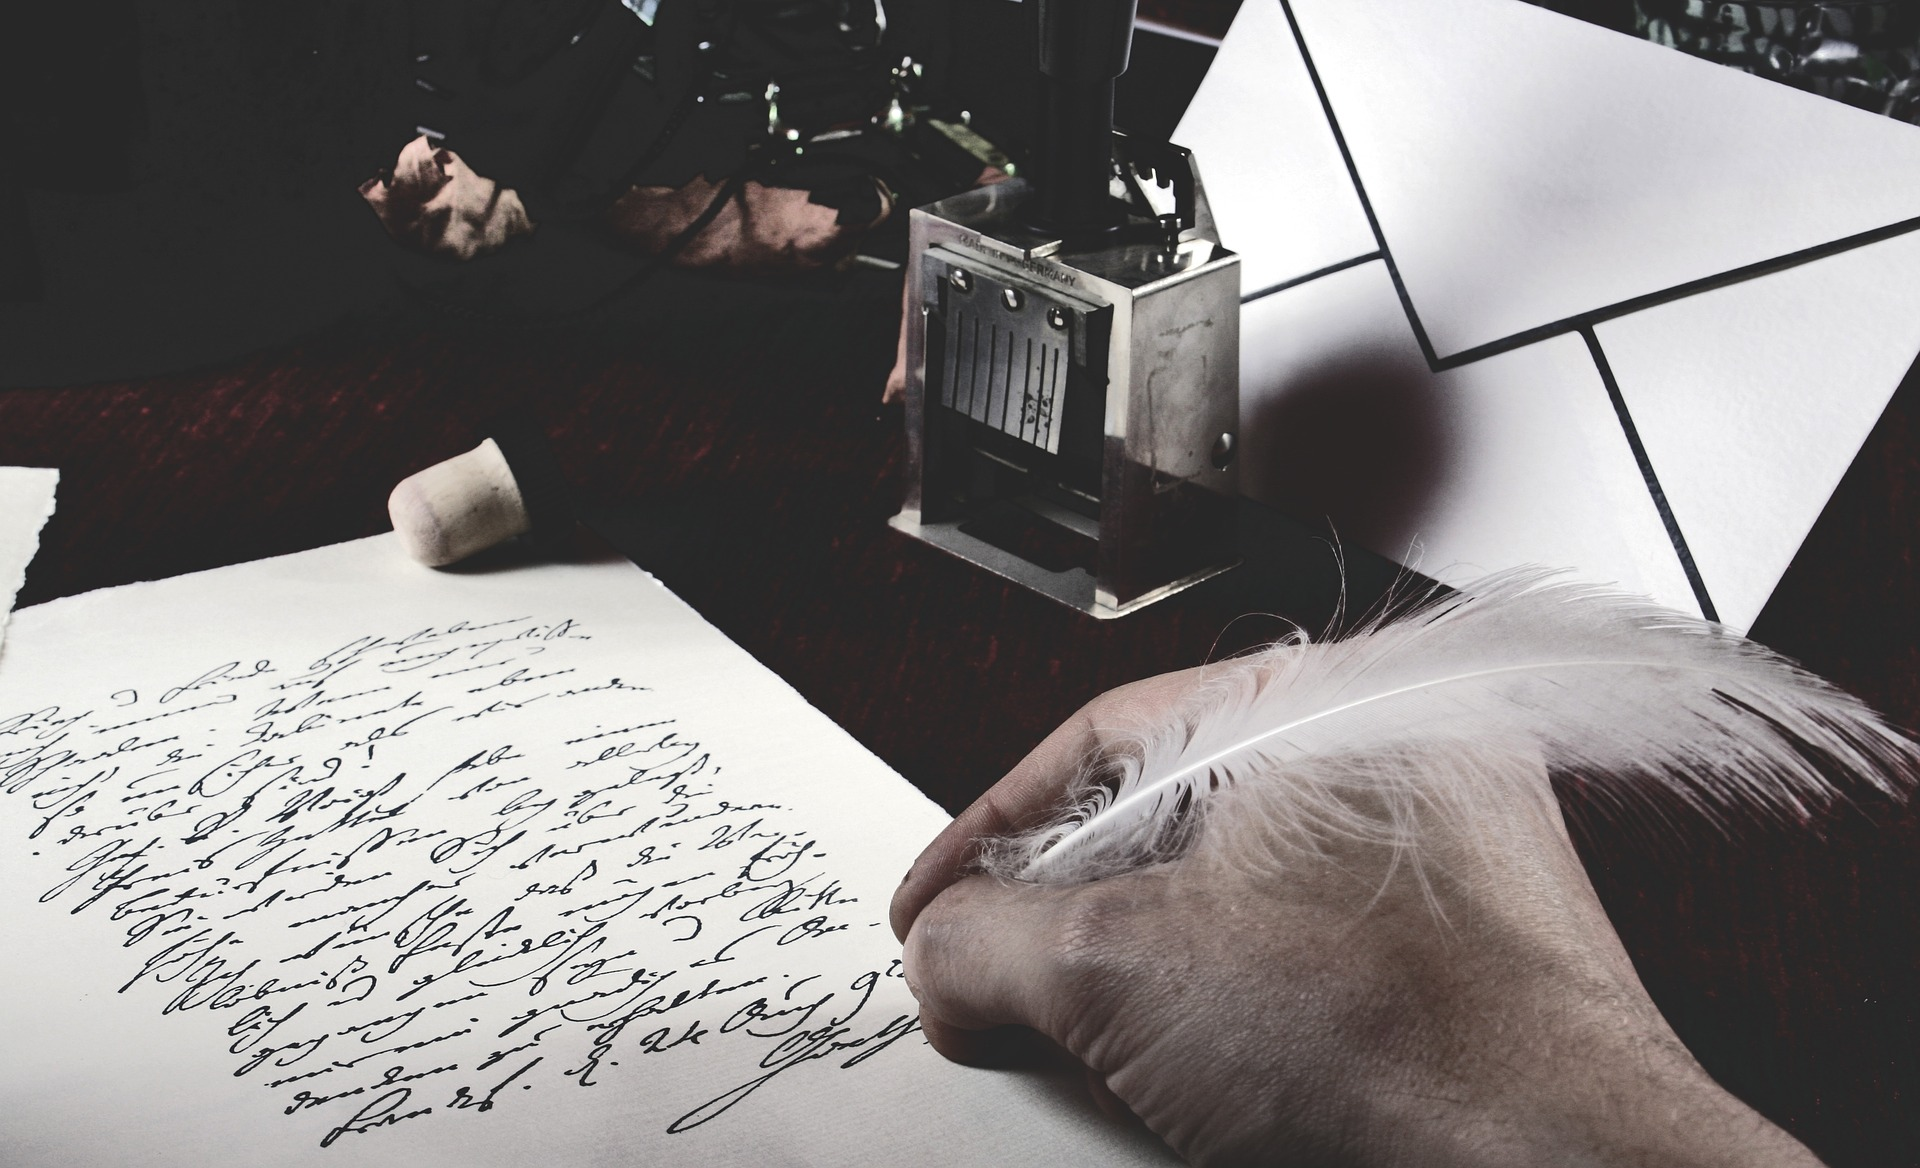 a hand writing with a quill